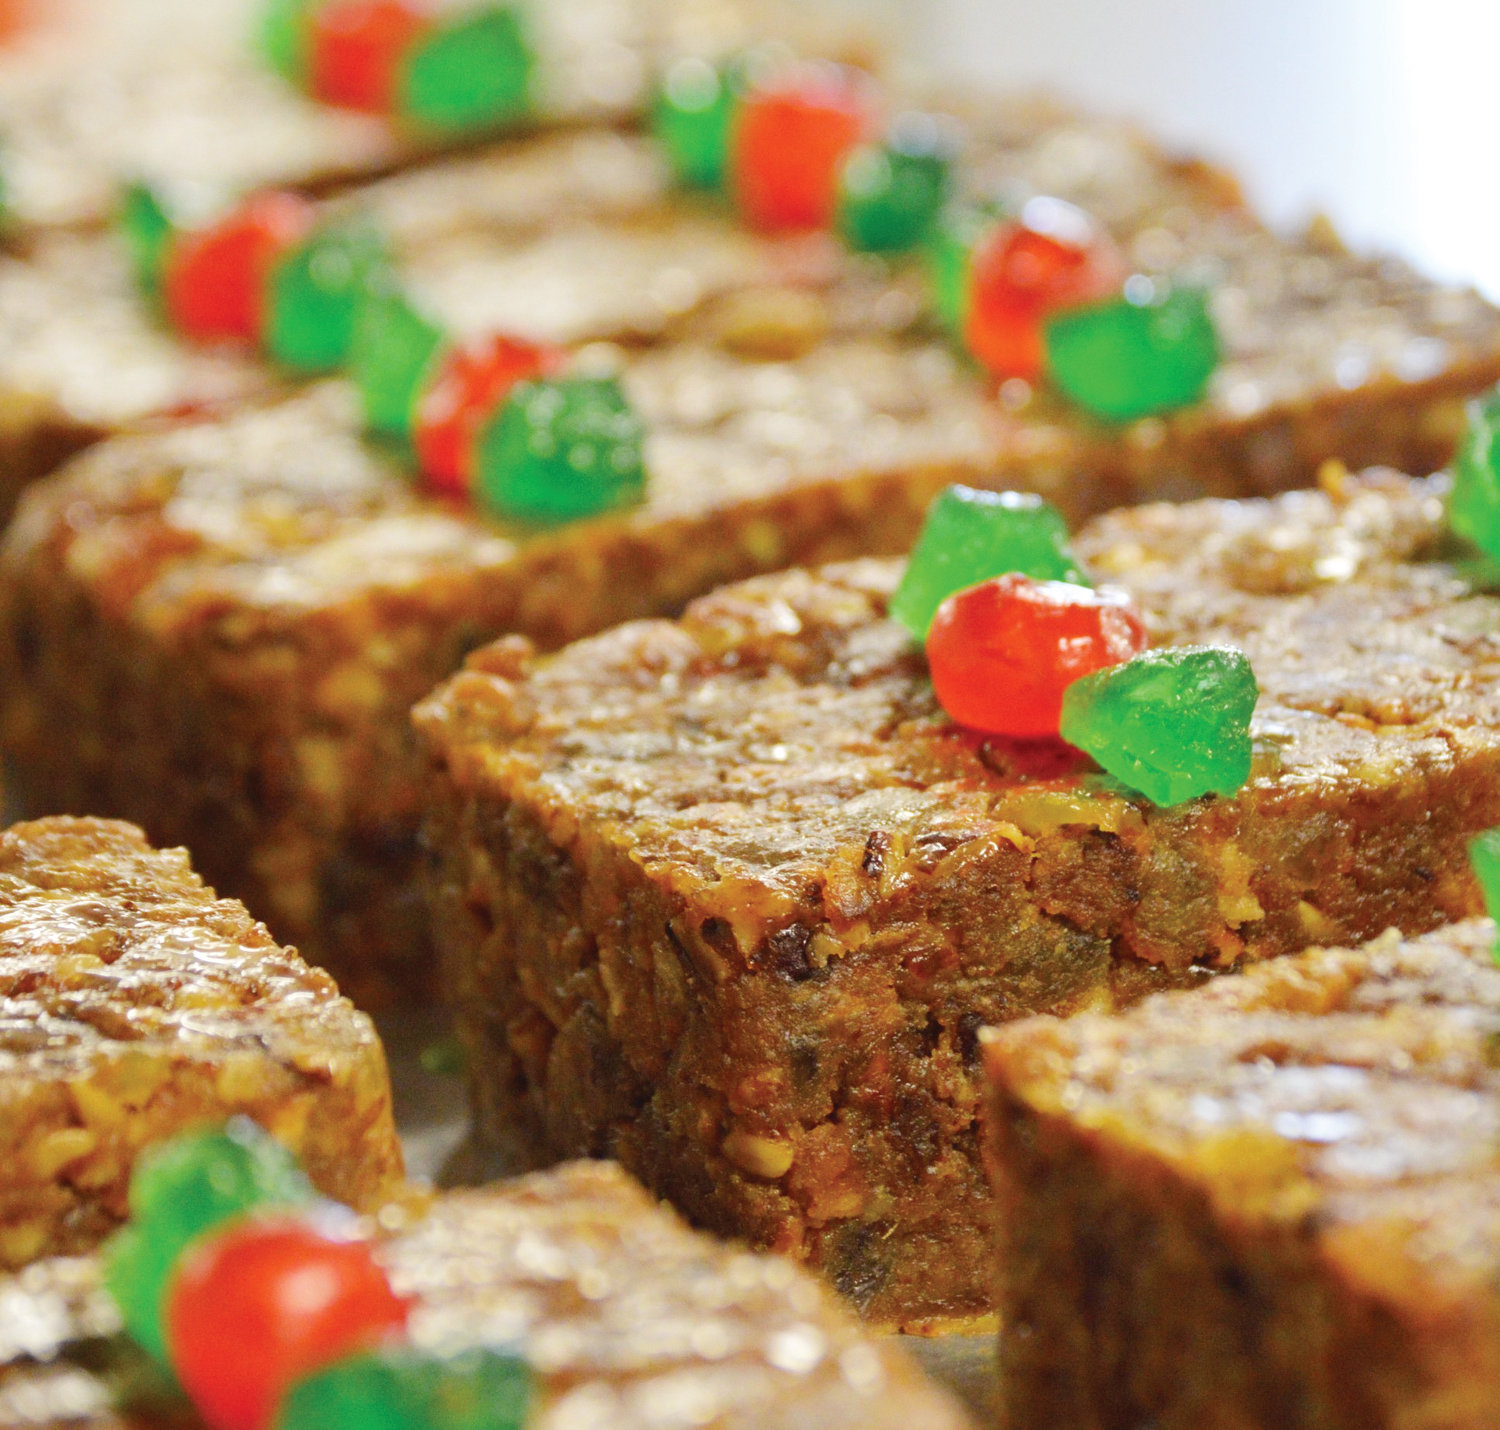 Southern Supreme's classic fruitcake is widely lauded as 'the best I've ever tasted.'